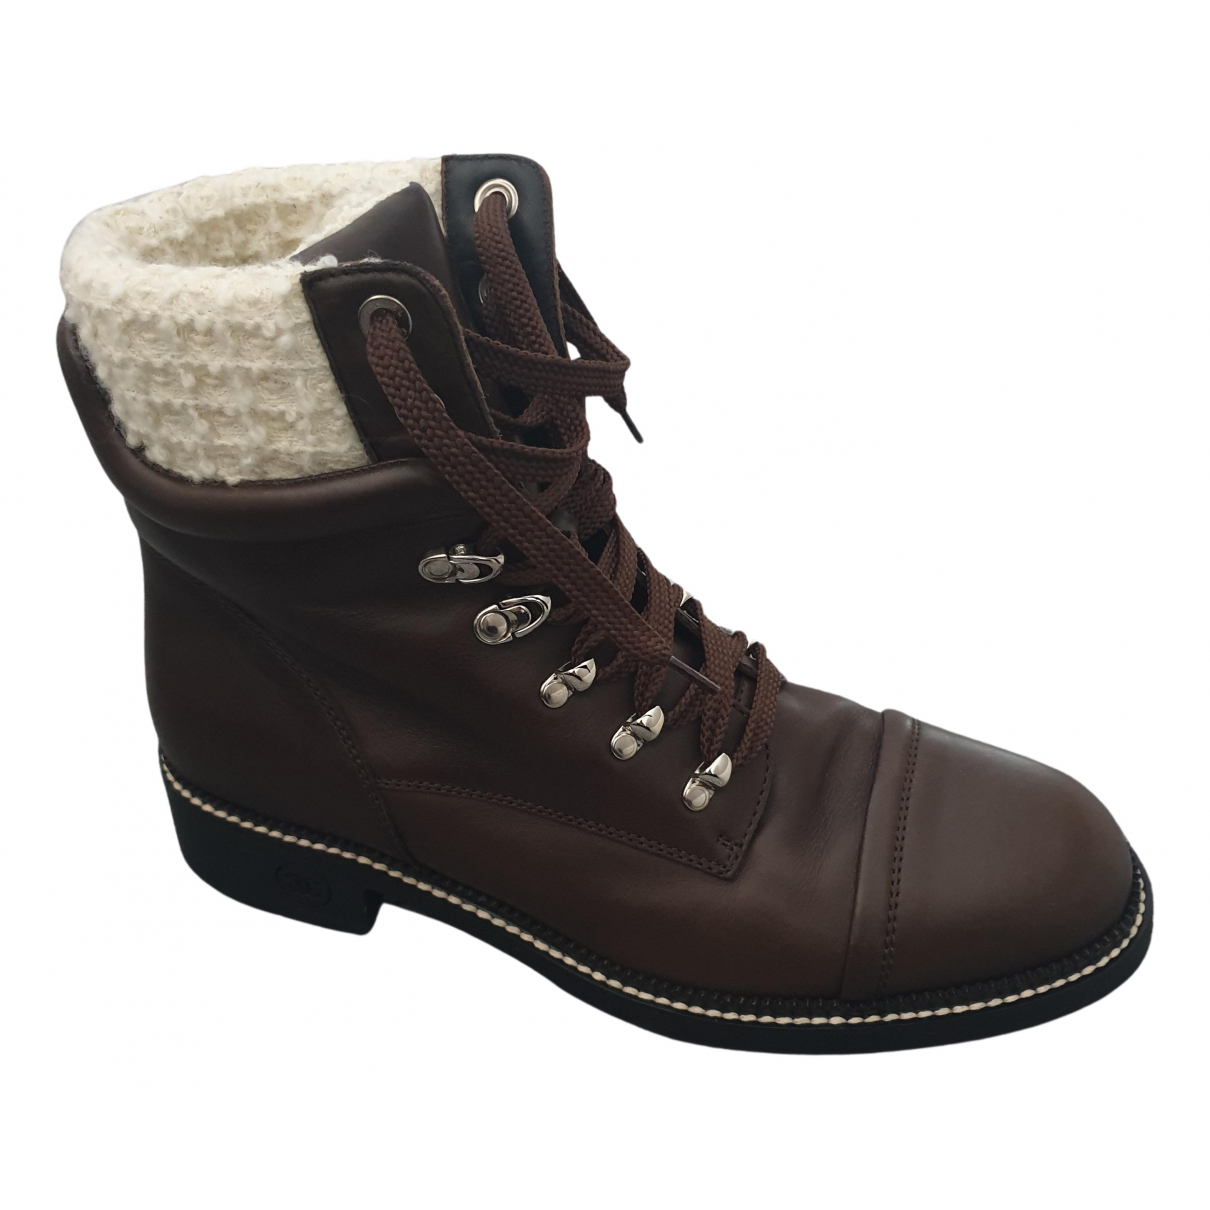 Chanel N Brown Leather Ankle boots for Women 43 EU